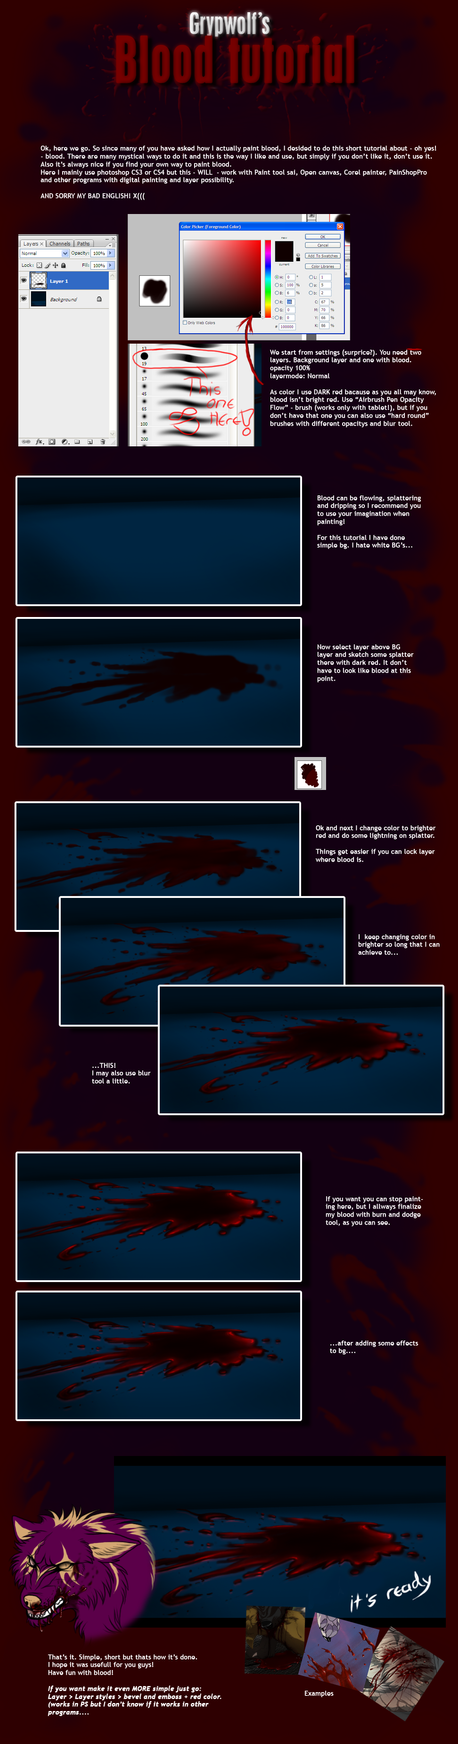 Grypwolf's Blood tutorial by Grypwolf